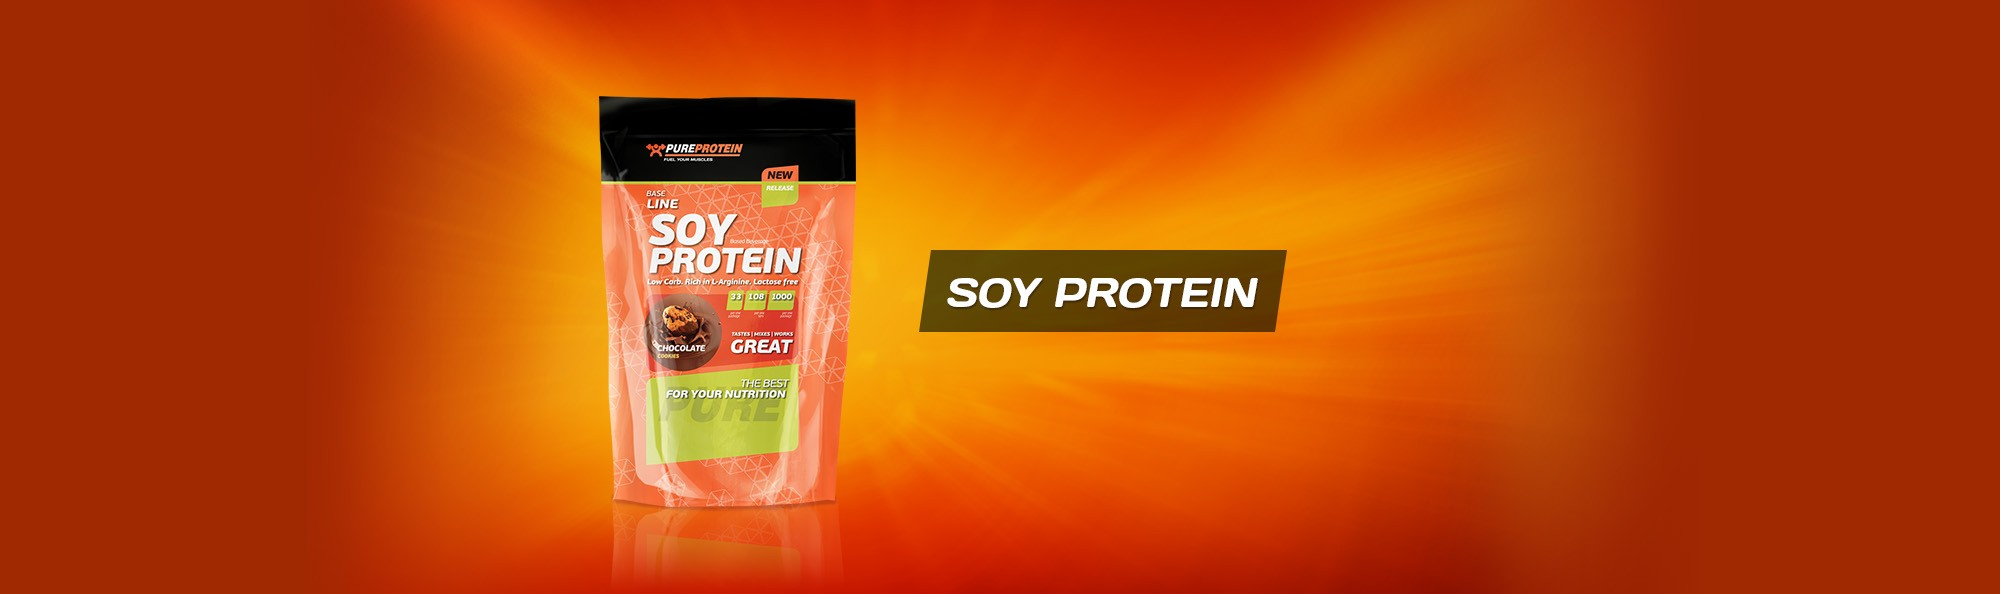 Соевый протеин Soy Protein Base Line от Pure Protein